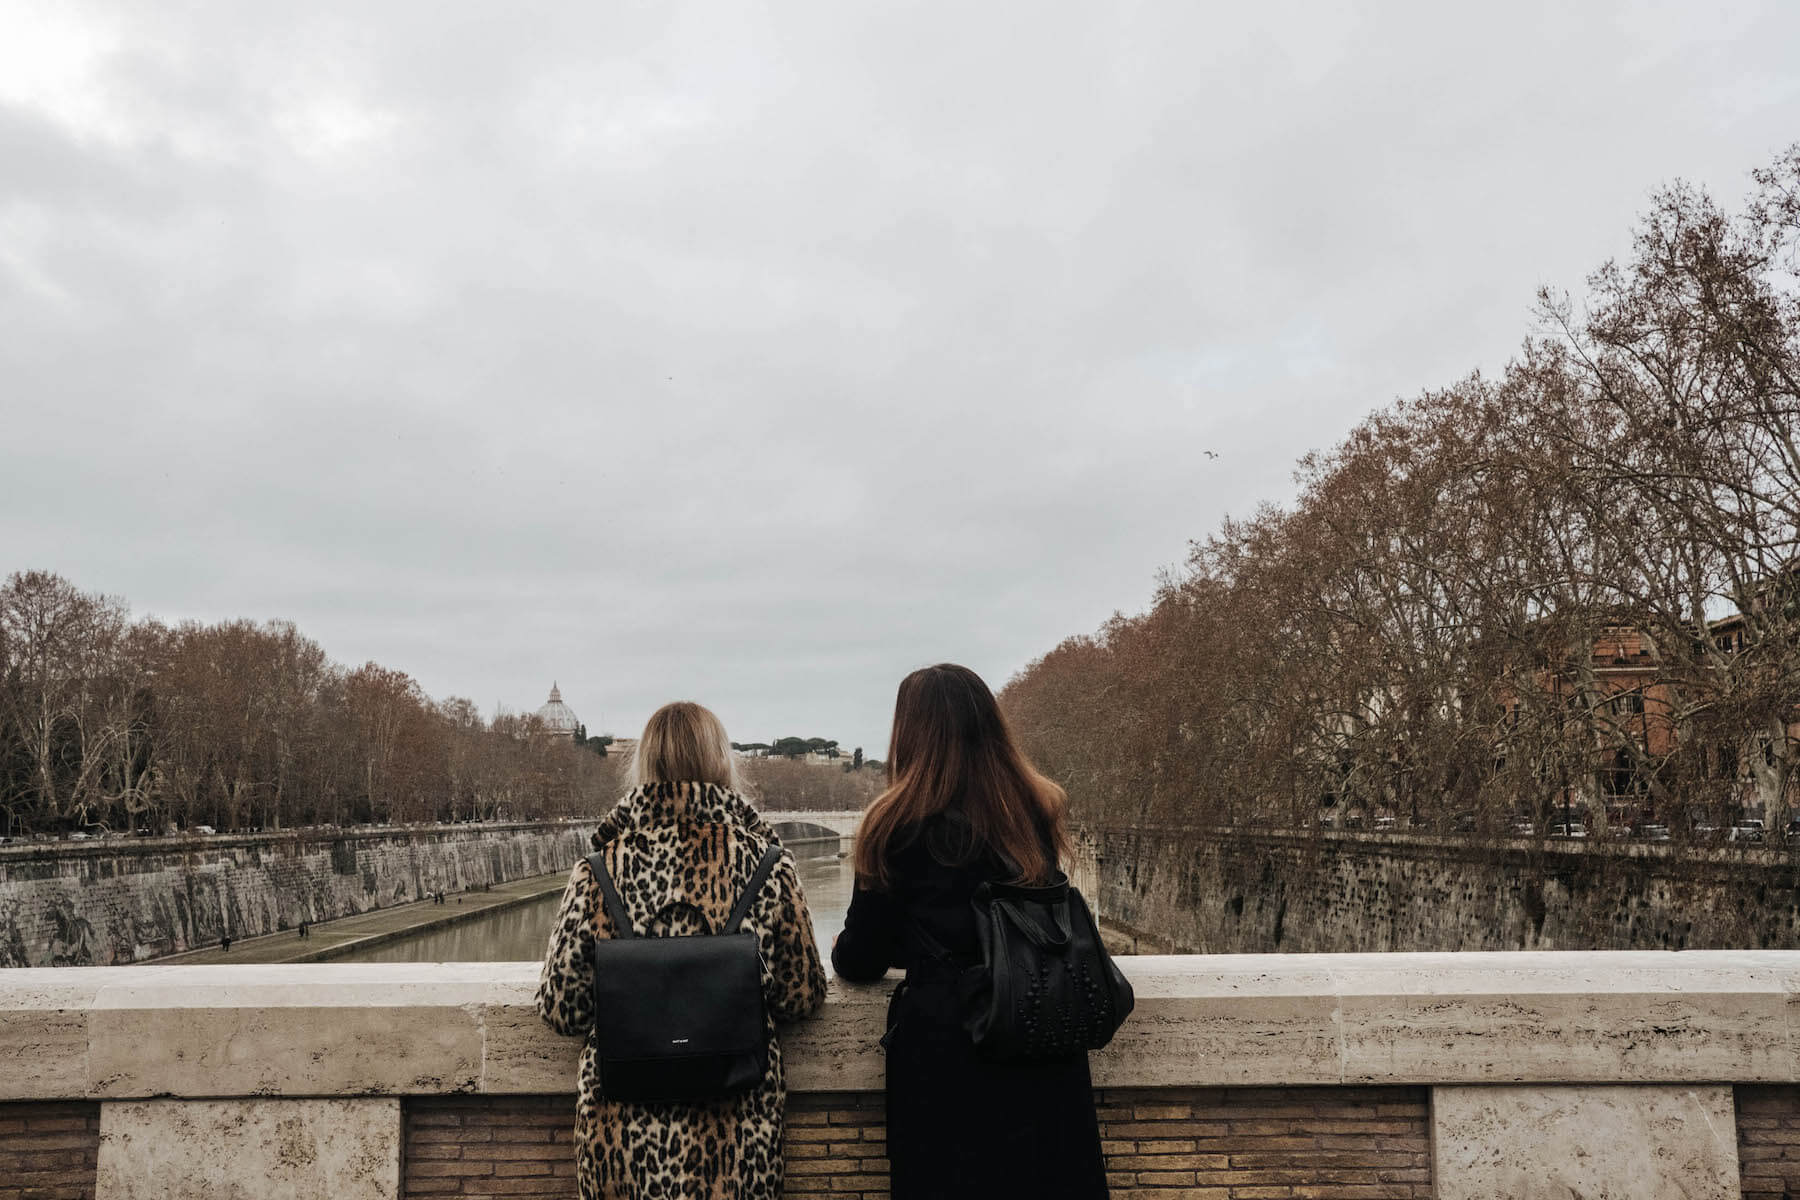 Sisters on a bridge looking out over a river on a family trip in Rome, Italy